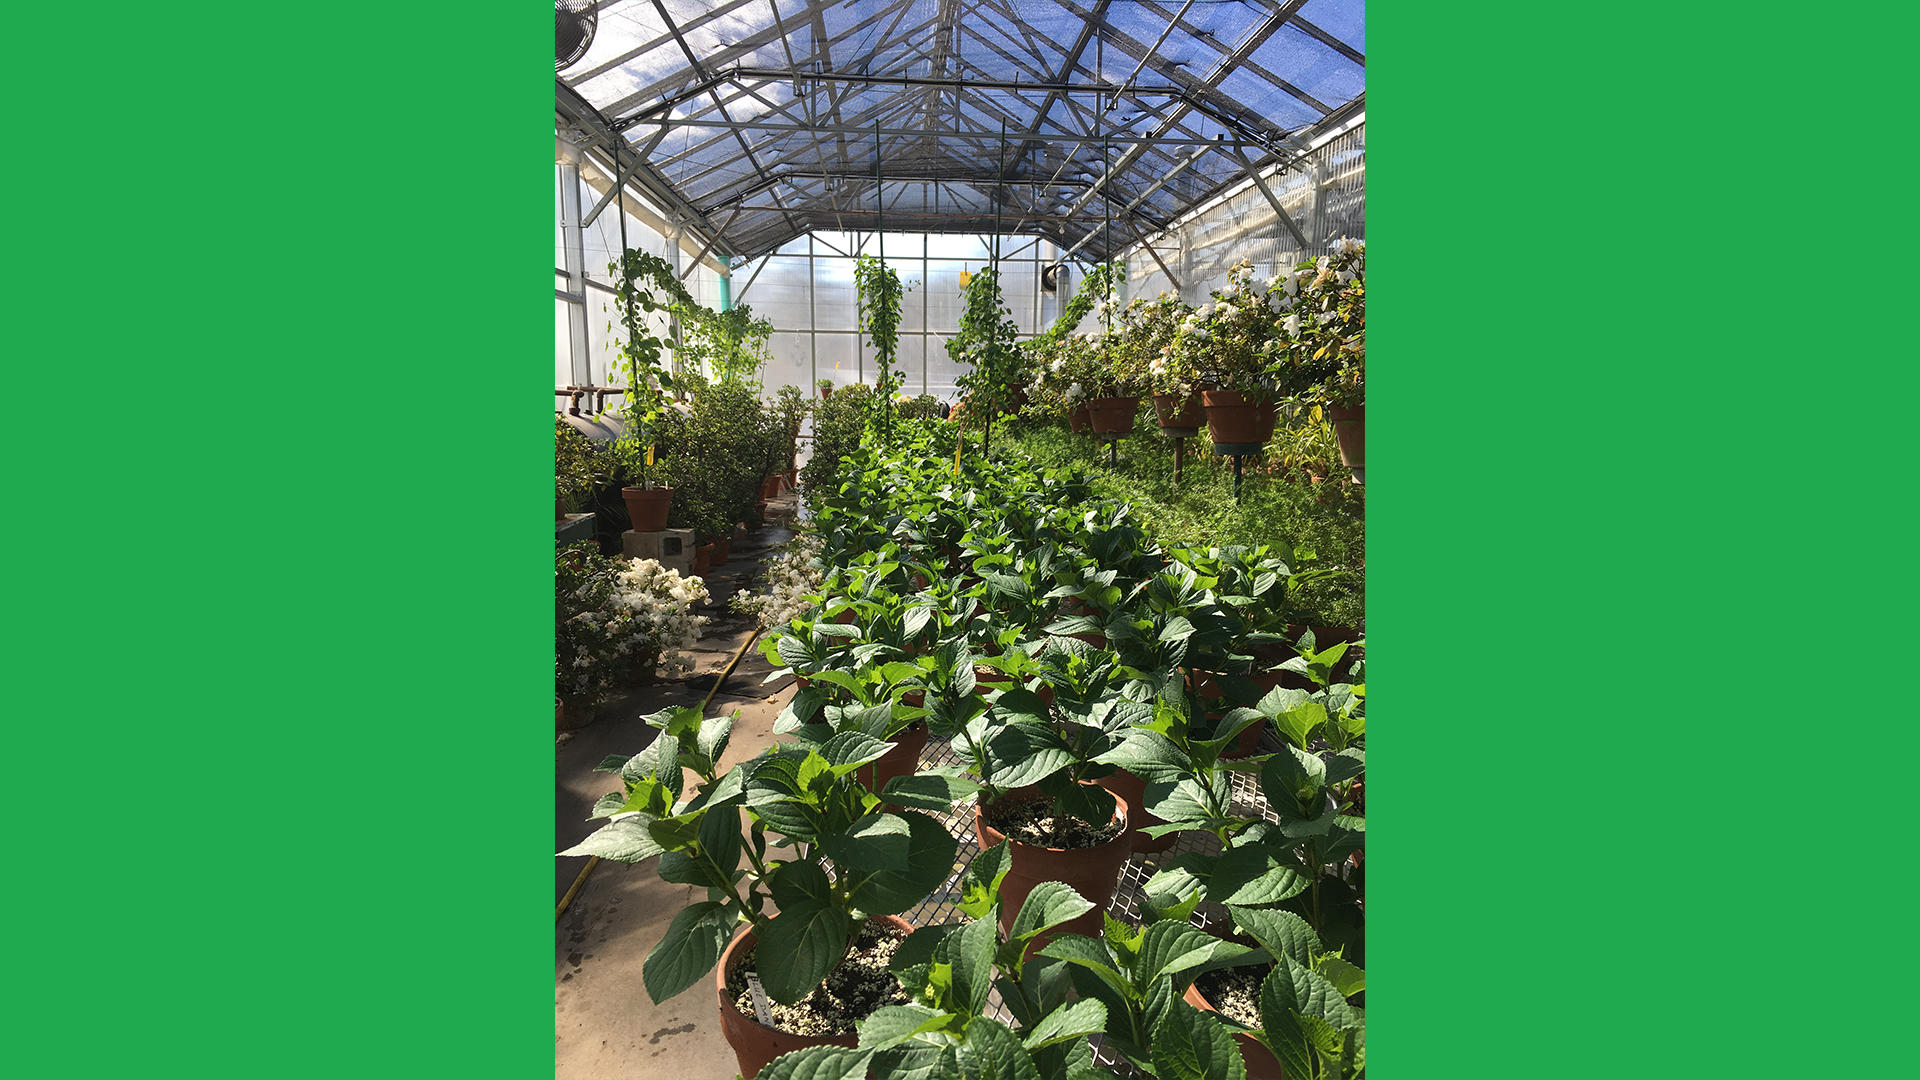 A third view of the Hingham Nursery greenhouses.